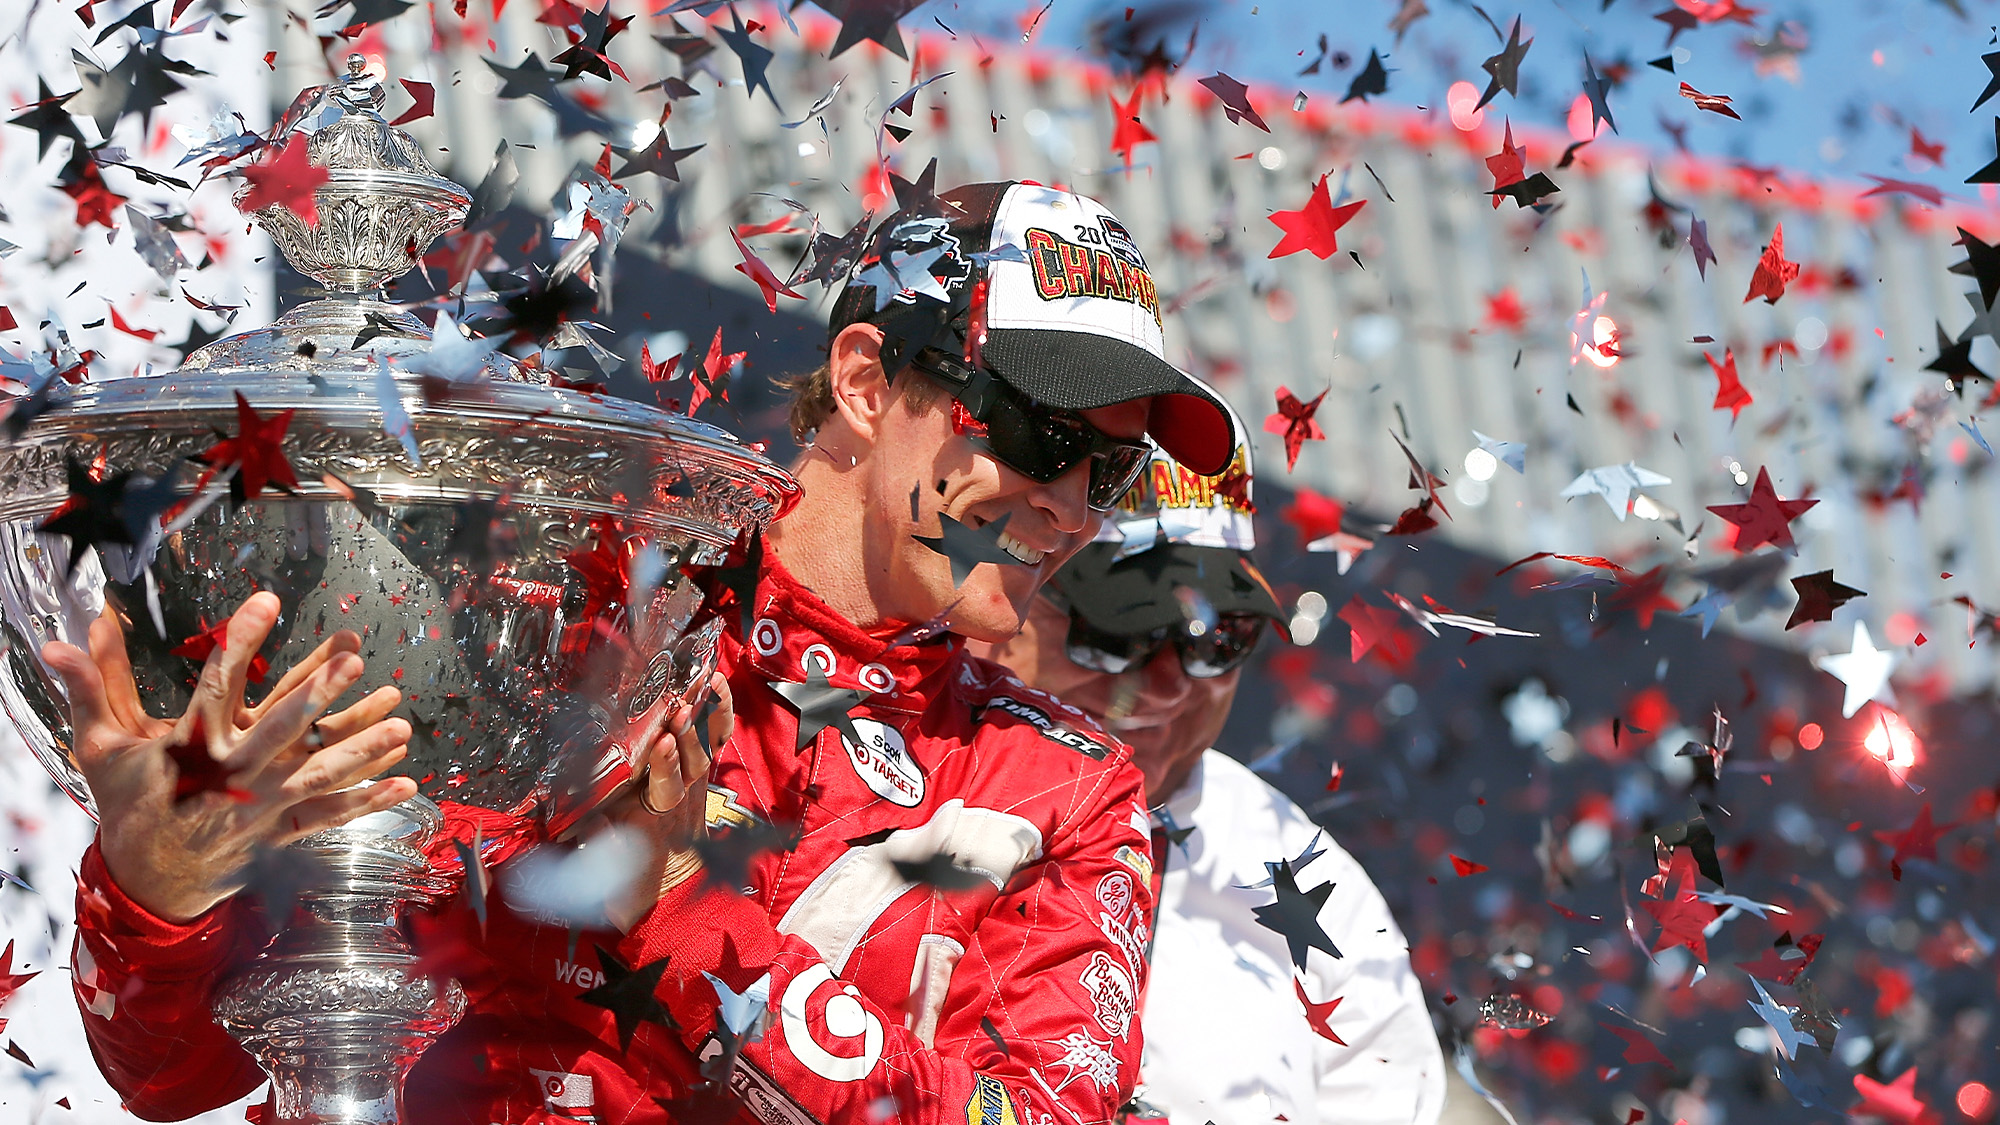 Scott Dixon celebrates victory in the race and championship at the 2015 Grand Prix of Sonoma